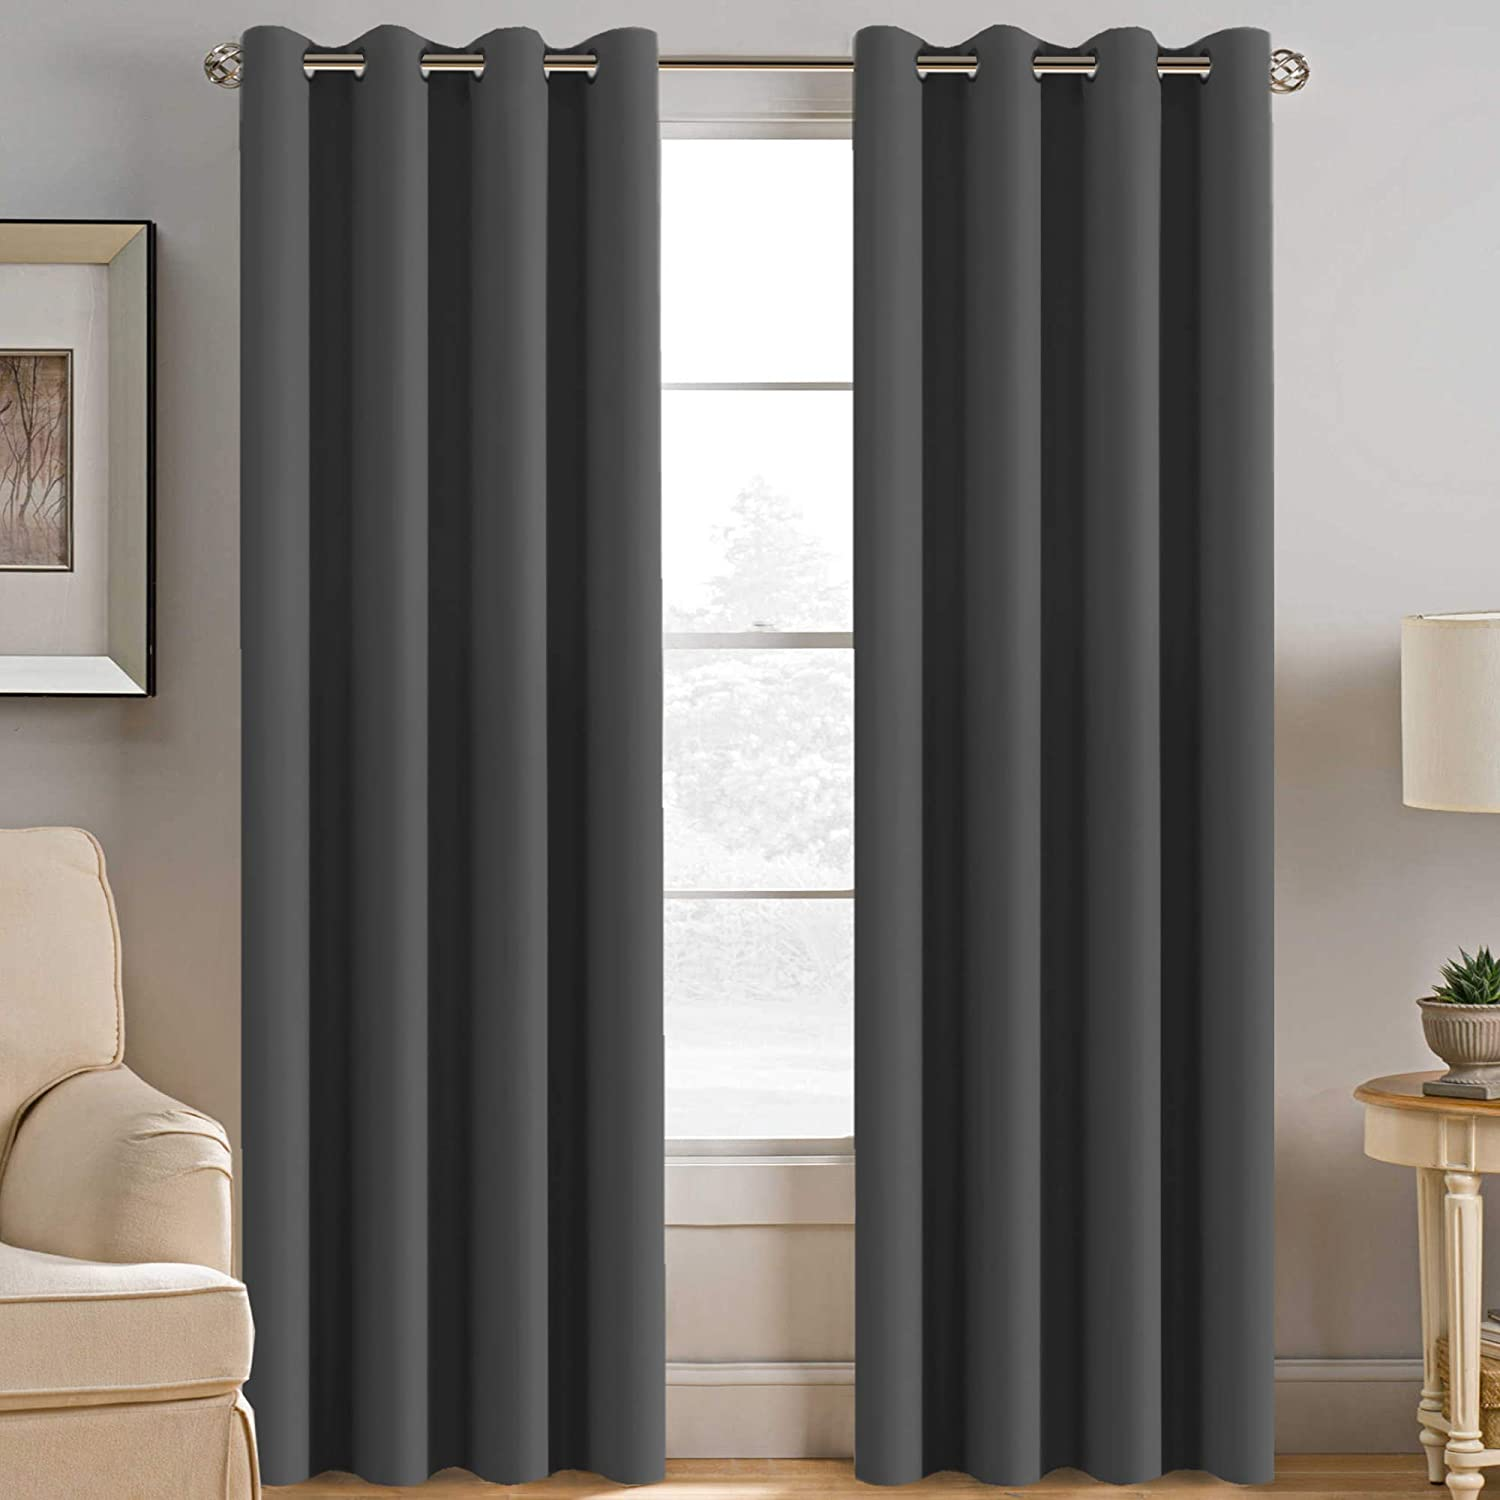 Microfiber Blackout Grey Curtains for Patio Door Thermal Insulated Living Room Curtains 96 Inch Long, Room Darkening Noise Reducing Blackout Curtain for Bedroom/Living Room, Charcoal Gray (1 Panel)